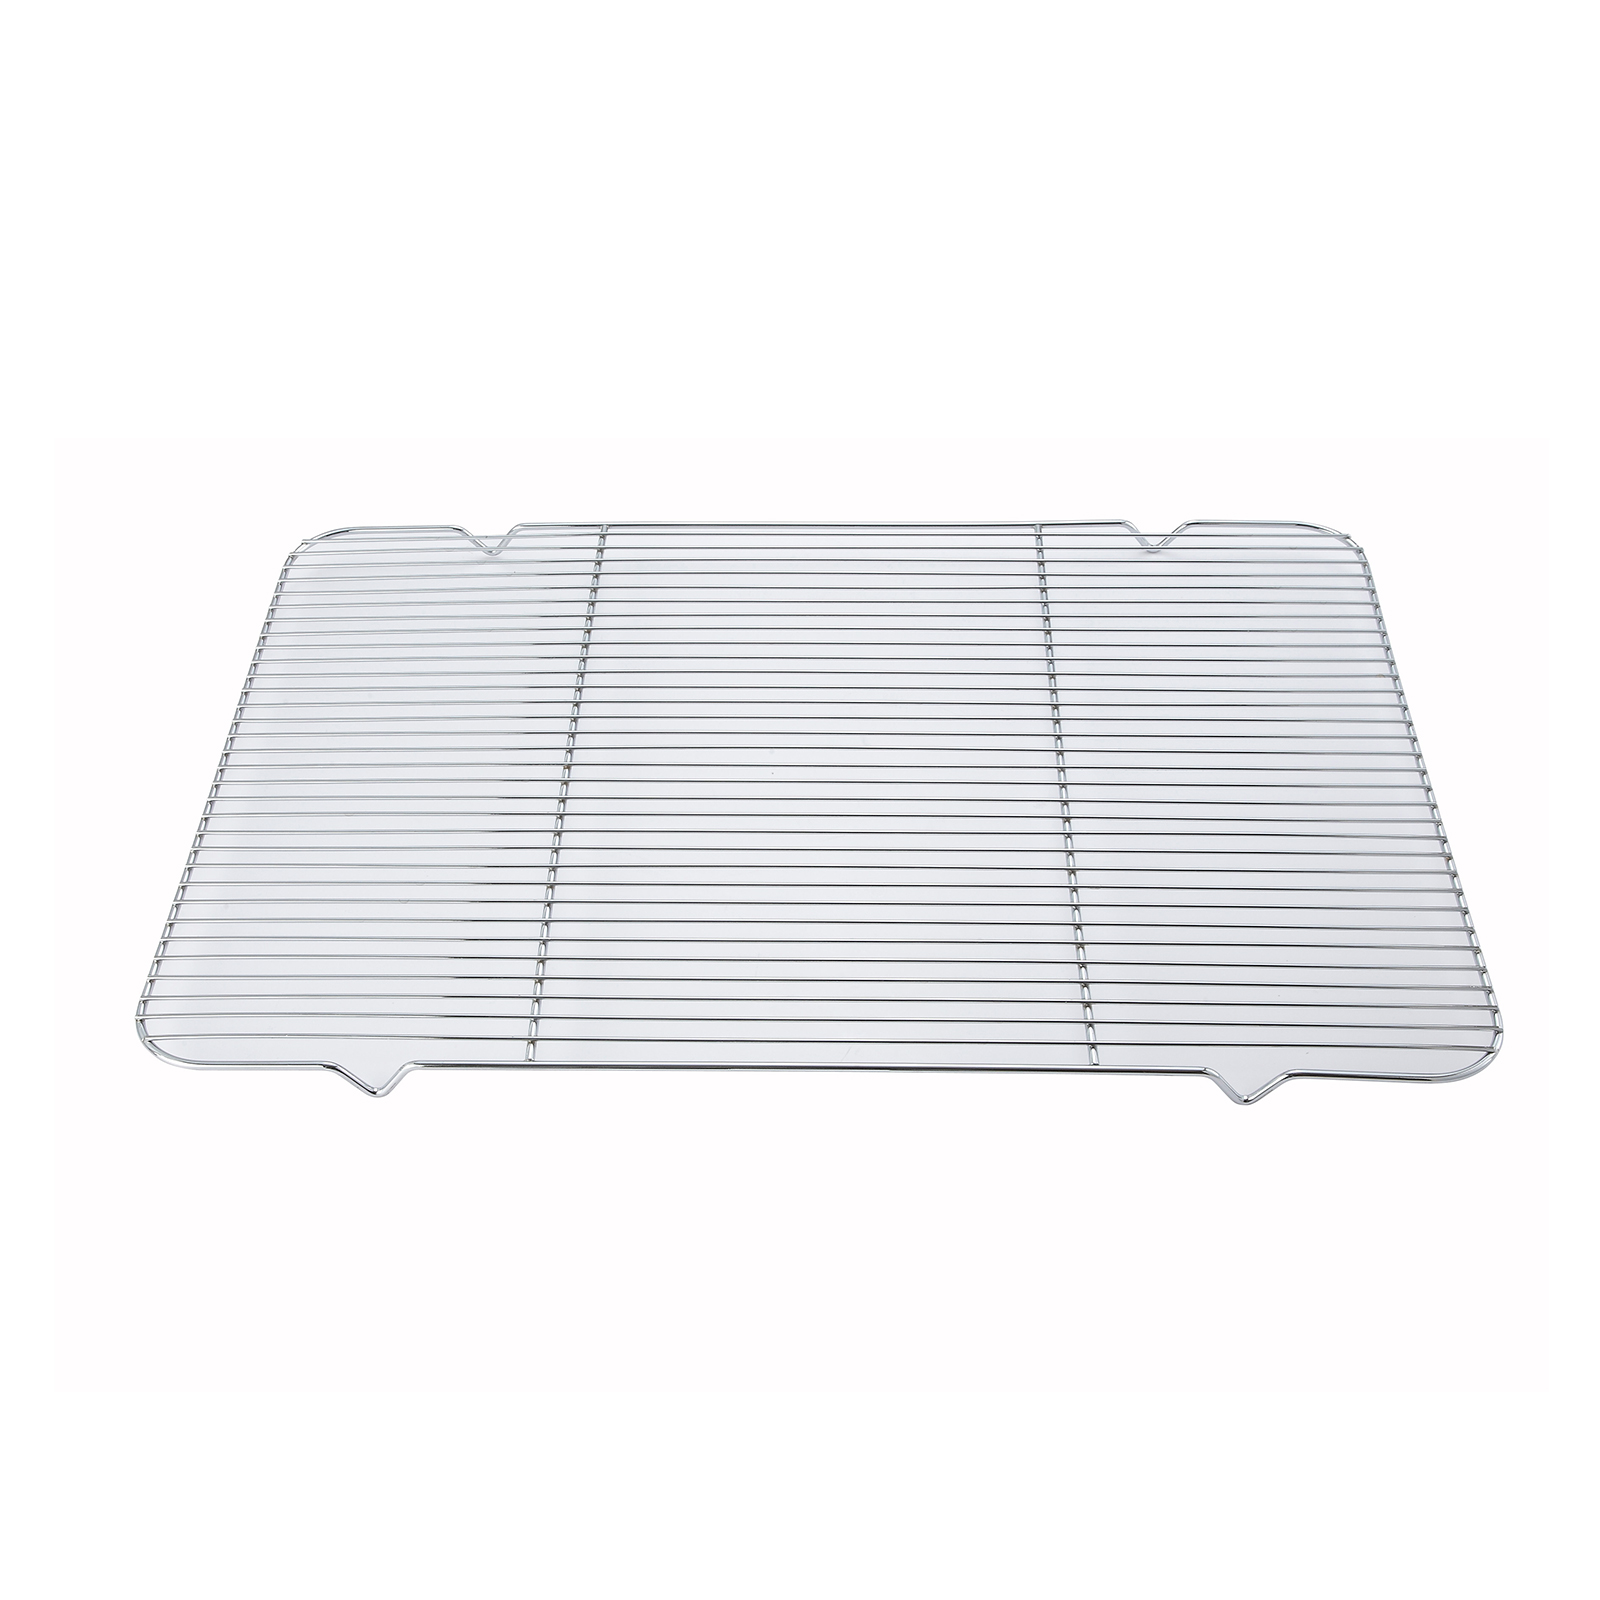 2400-015 Winco ICR-1725 wire pan rack / grate